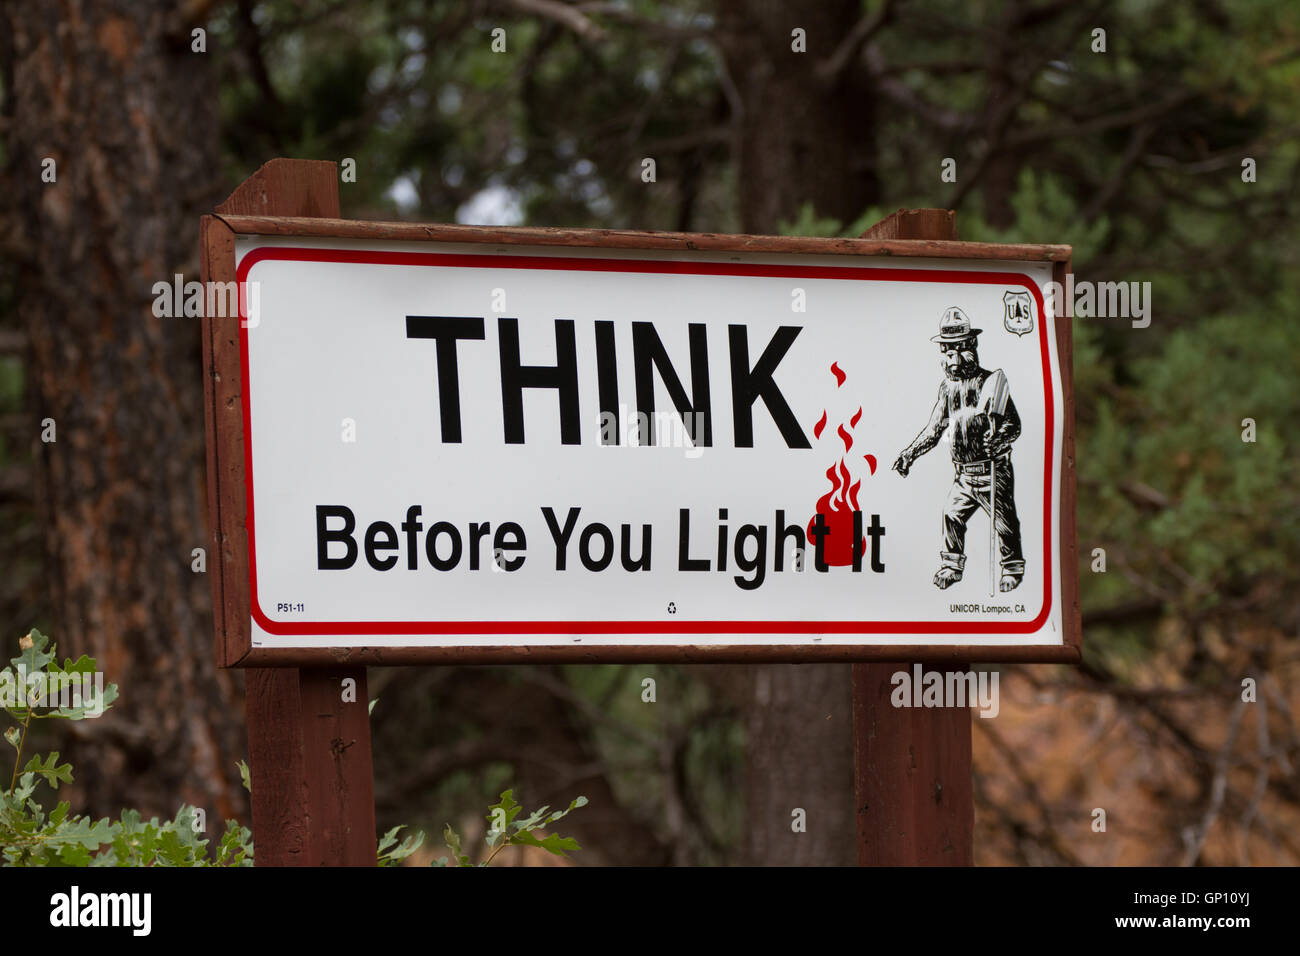 Think Before You Light fire safety sign. USA - Stock Image